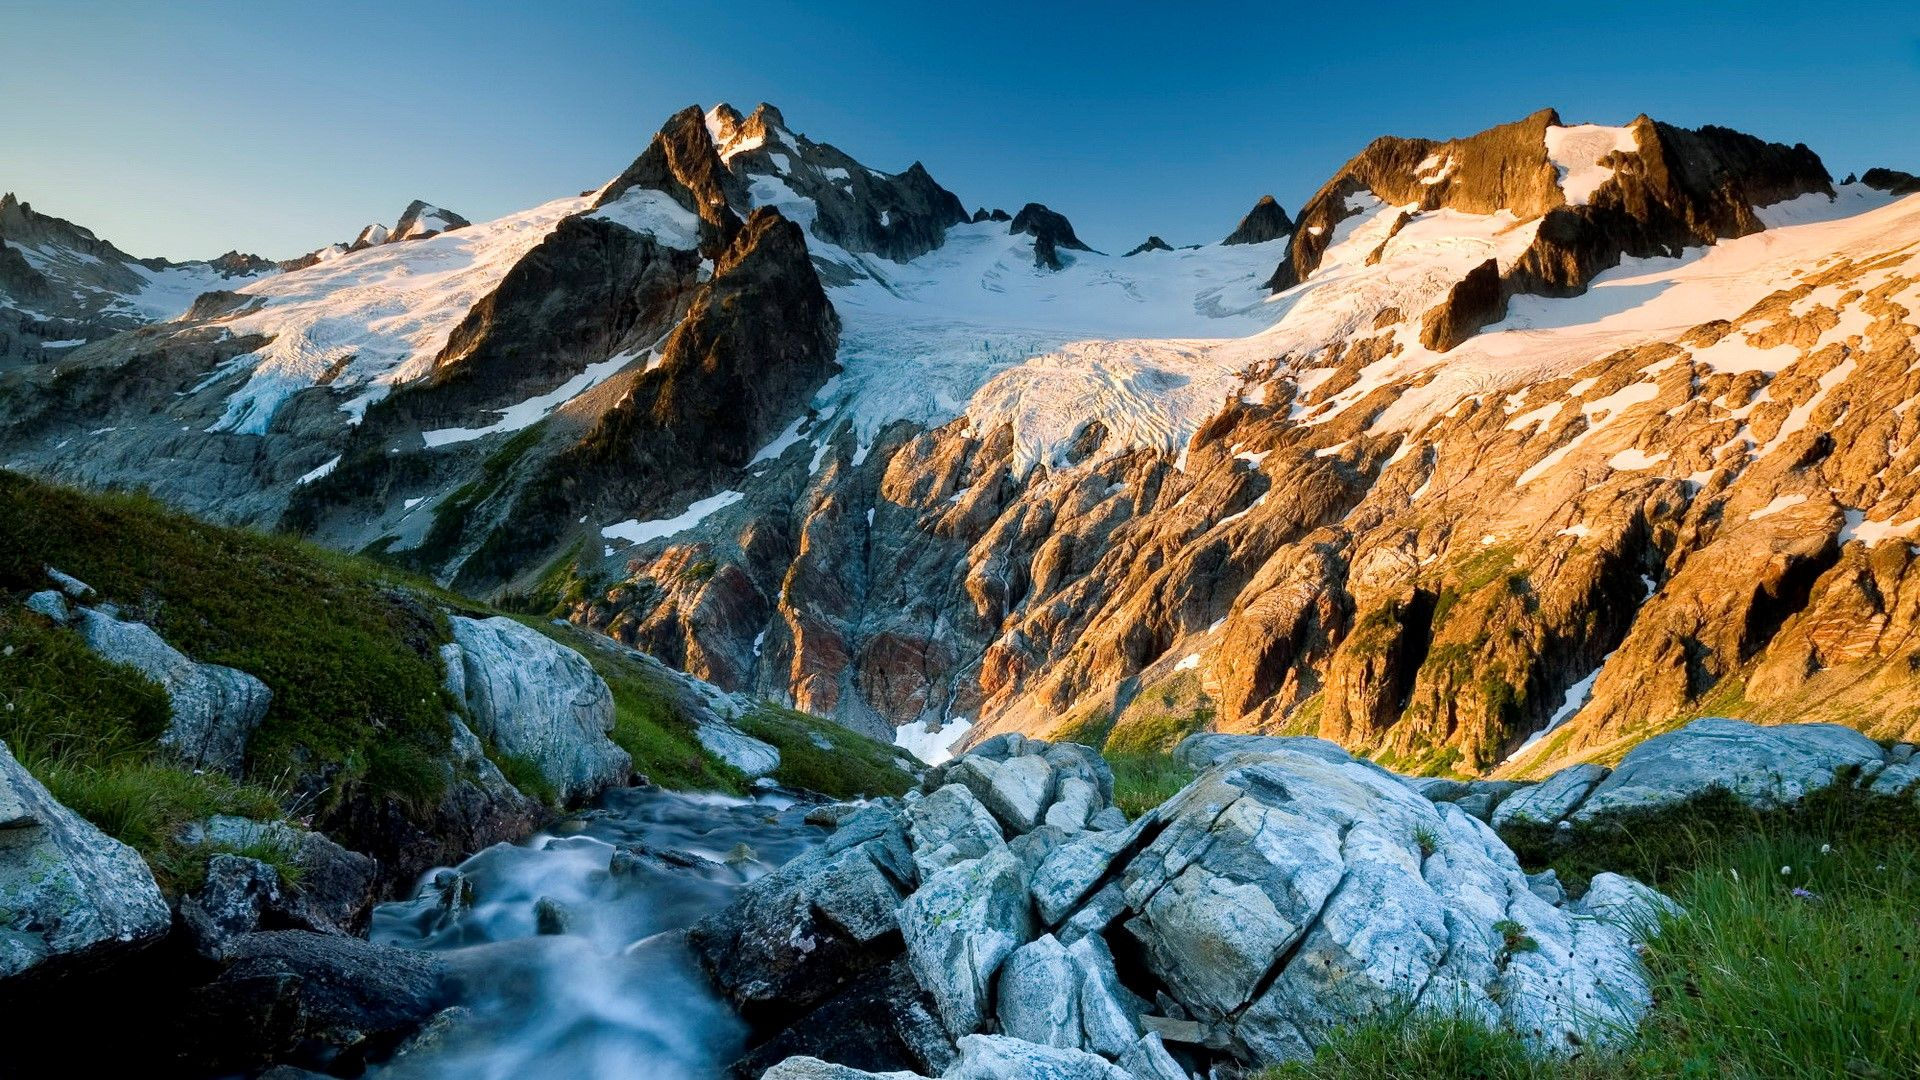 Free Mountain Wallpapers High Quality Resolution Mountain Wallpaper Nature Wallpaper Desktop Background Nature